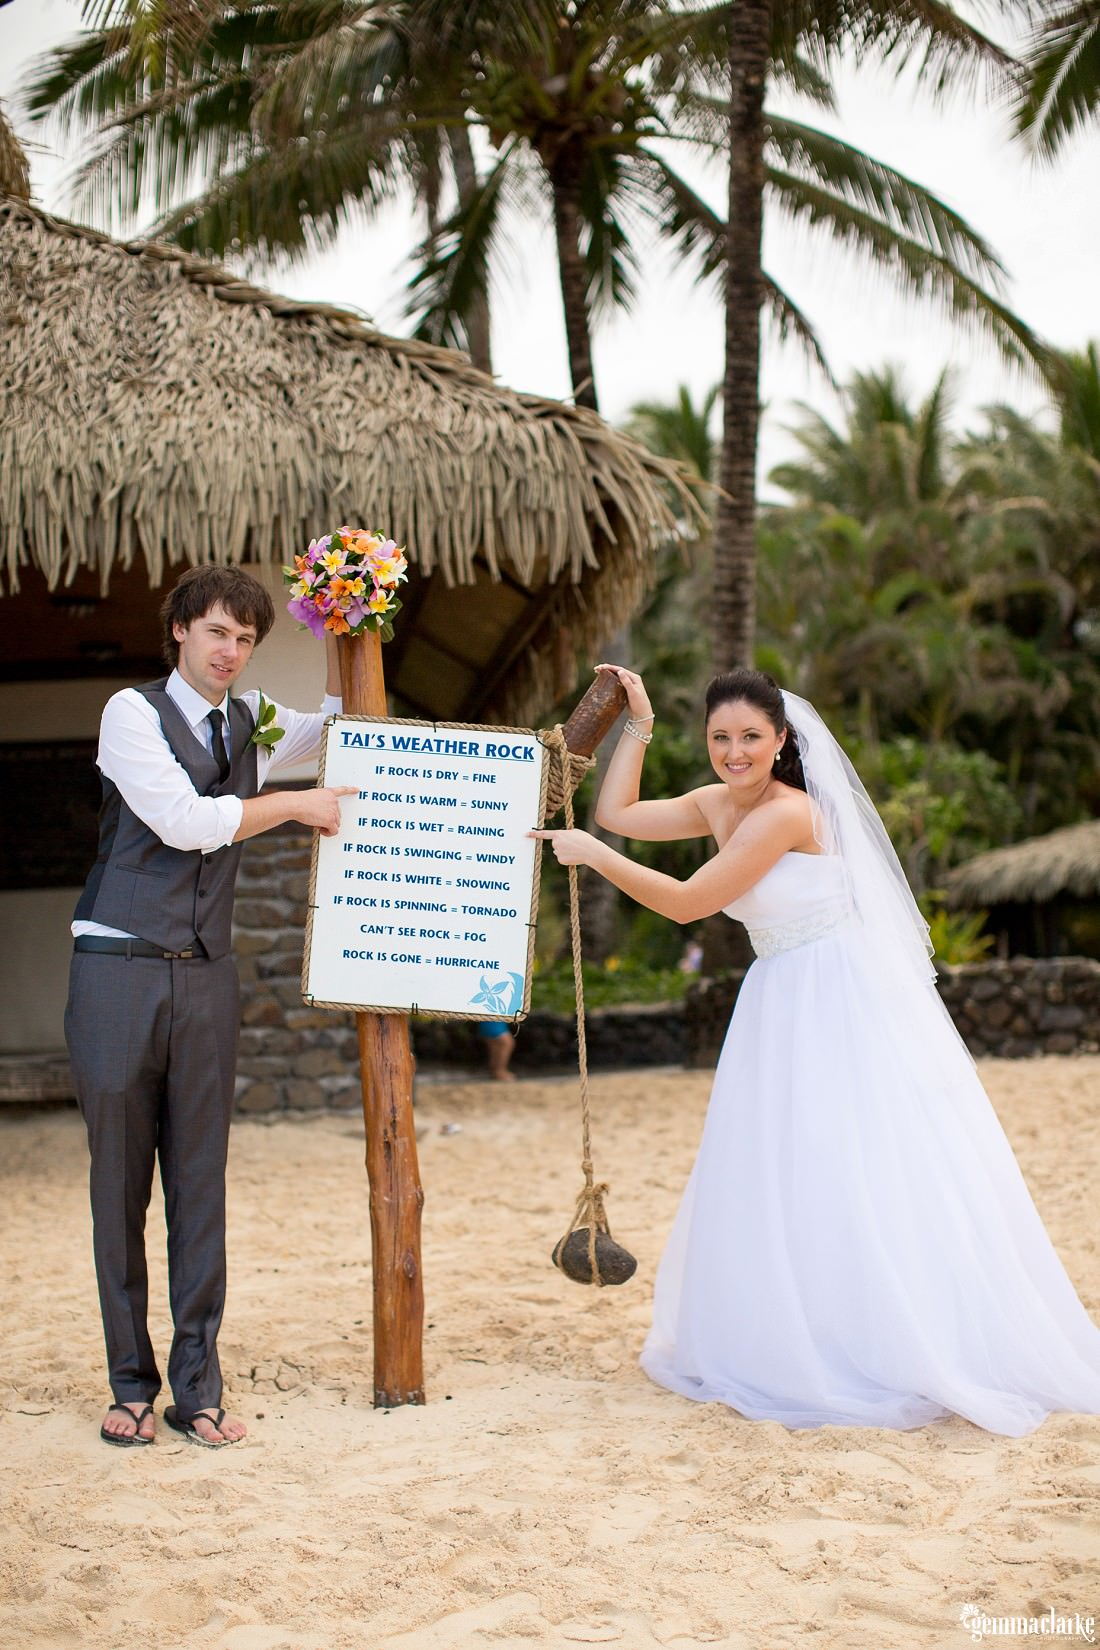 gemmaclarkephotography_south-pacific-destination-wedding_island-wedding_natalie-and-alex_0052